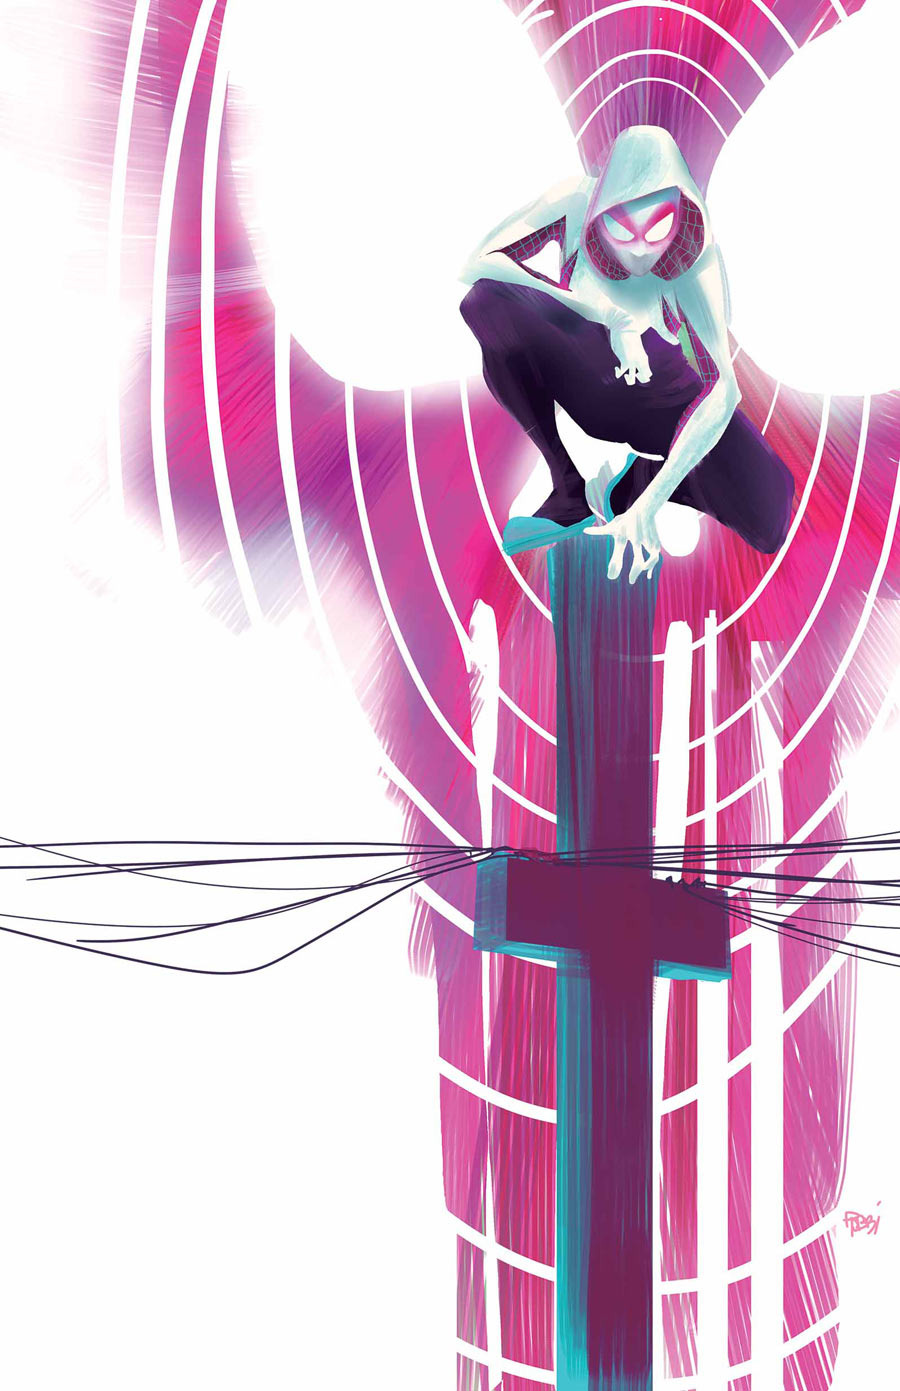 Spider-Gwen by Robbi Rodriguez